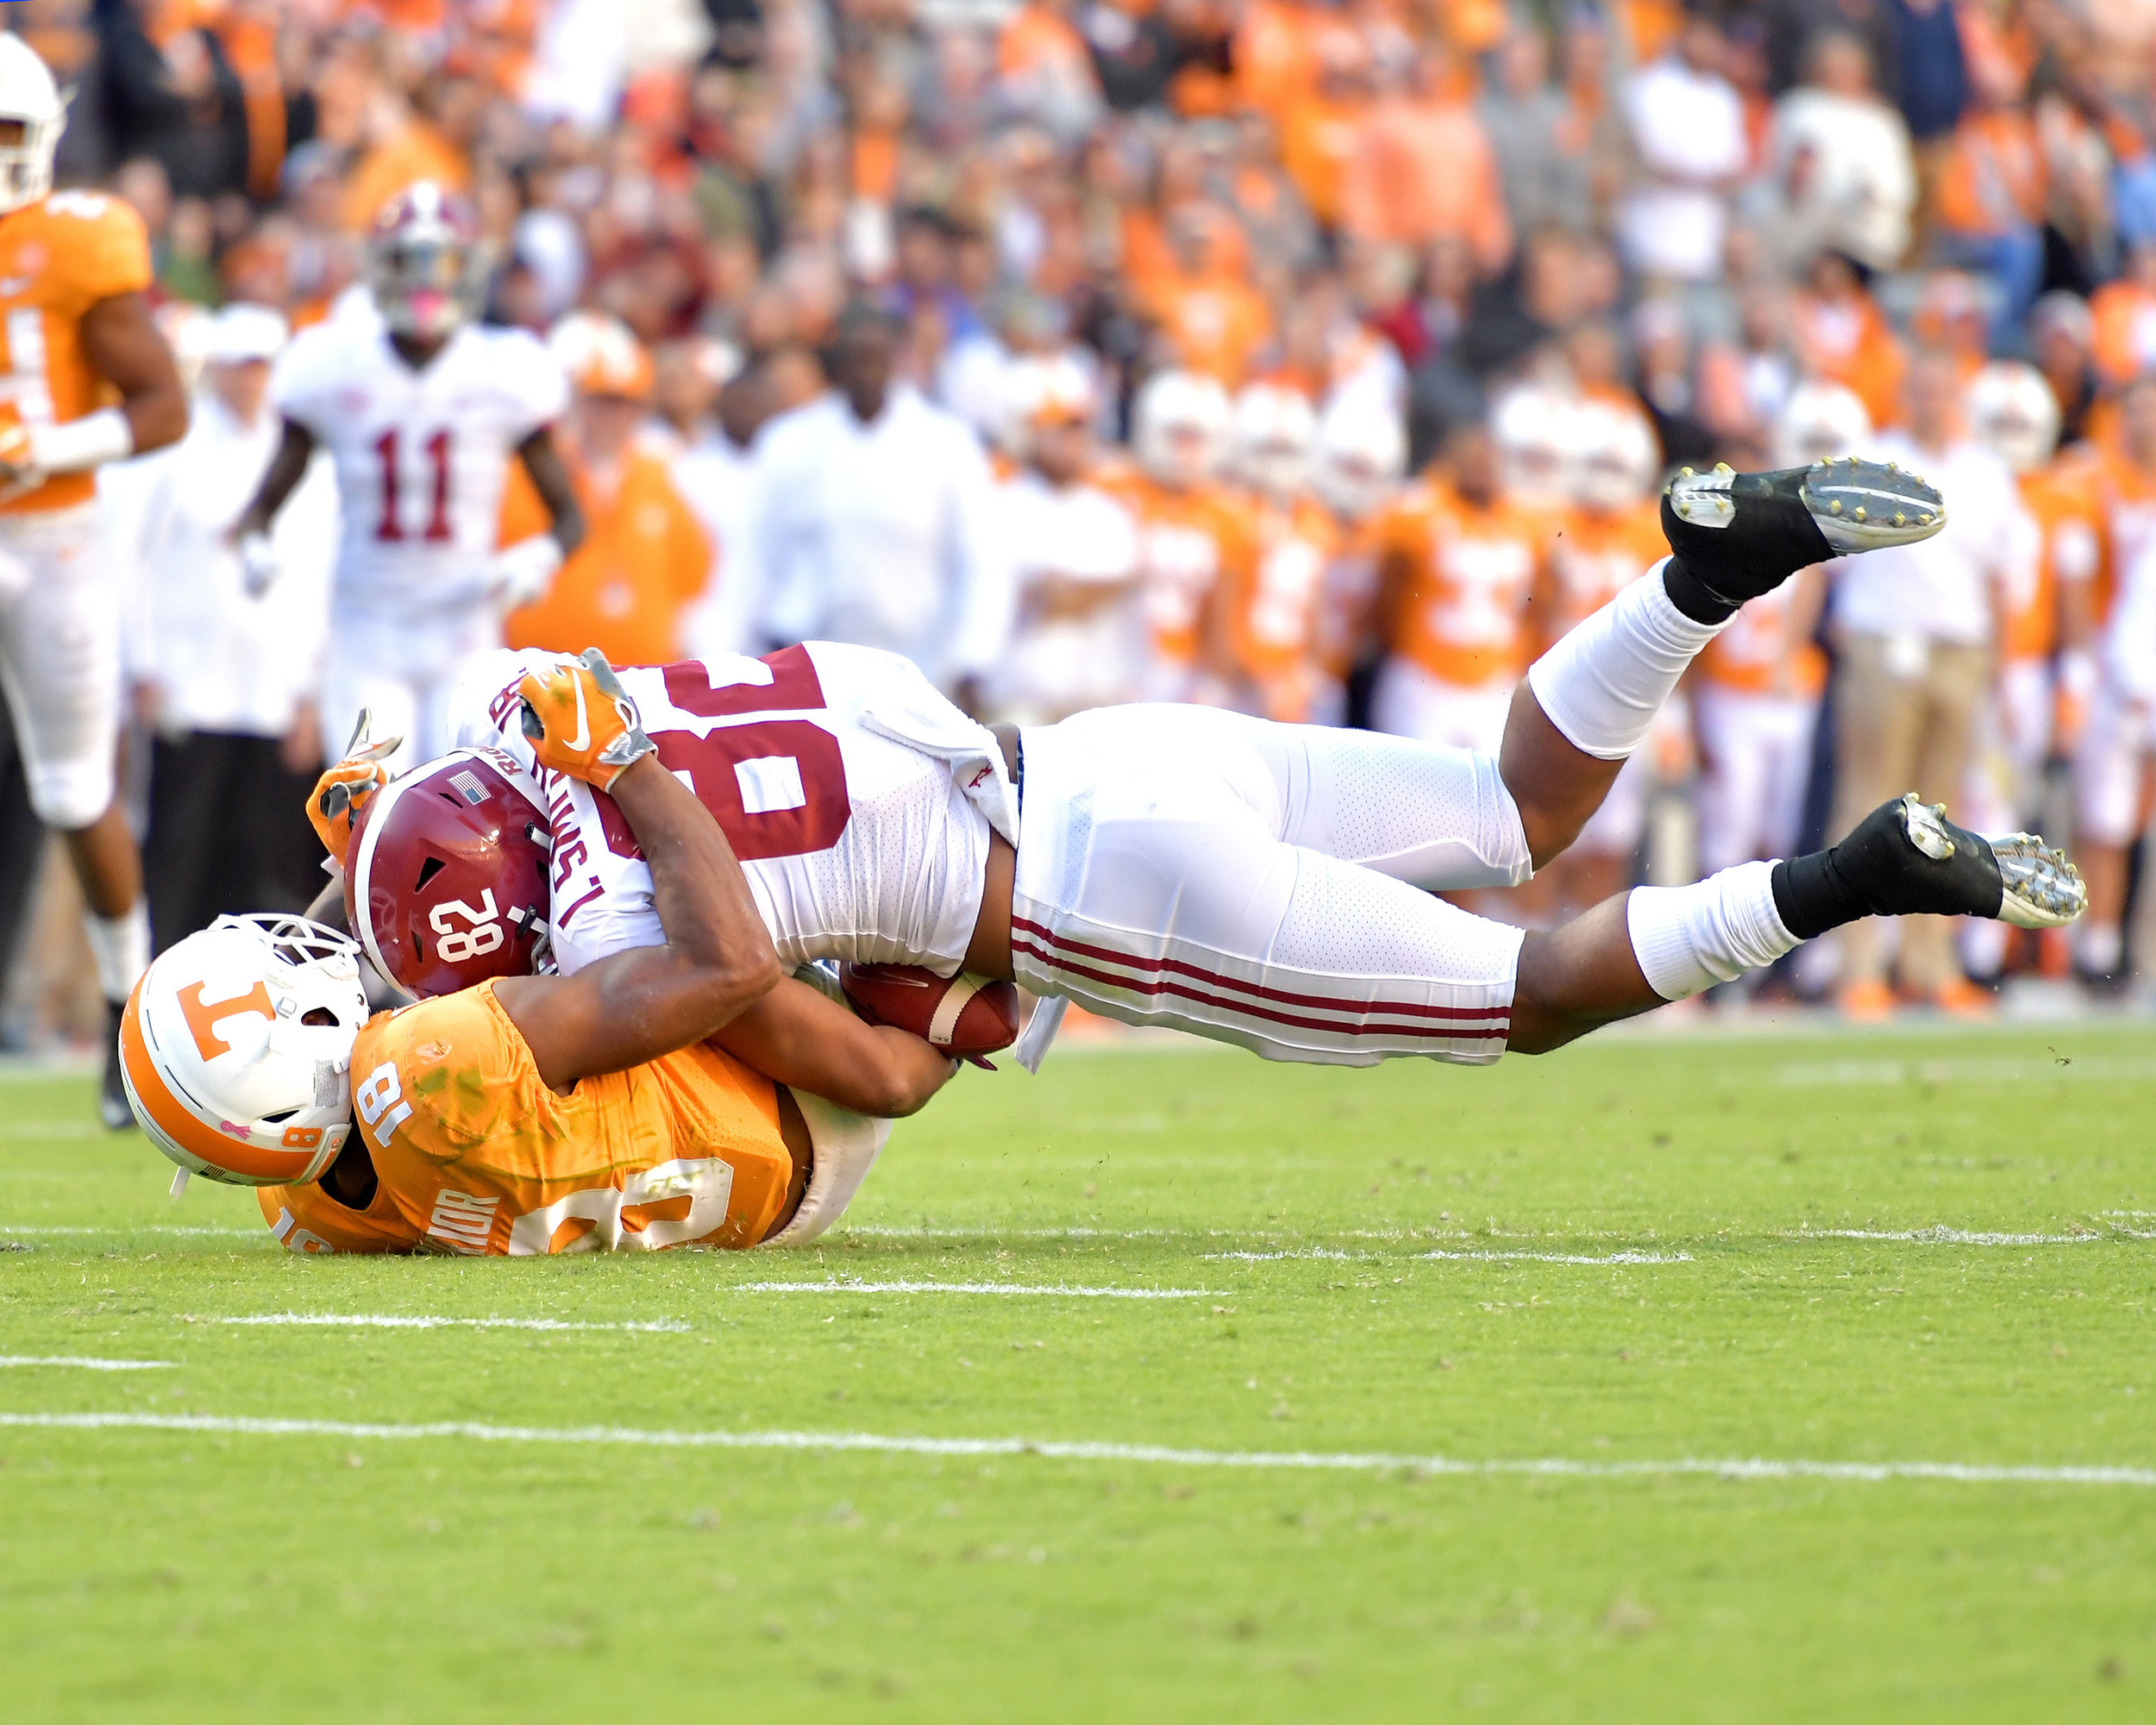 Alabama Crimson Tide tight end Irv Smith Jr. (82) is tackled by Tennessee Volunteers defensive back Nigel Warrior (18) in the second quarter of the NCAA football game on Saturday, Oct. 20, 2018, at Neyland Stadium in Knoxville. Tenn. Alabama wins 58-21. (Photo by Lee Walls)